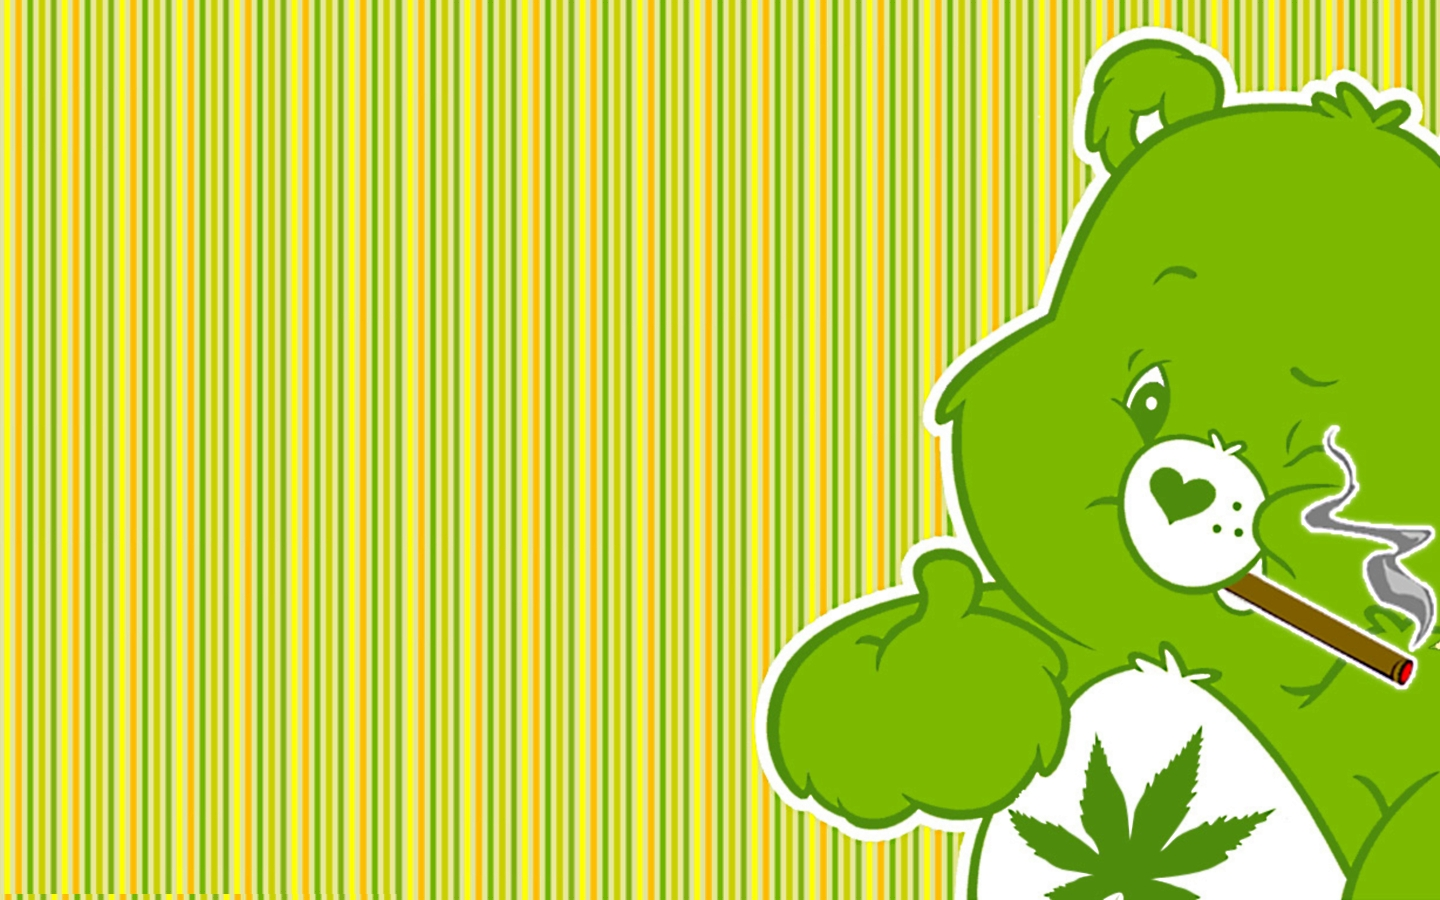 Facebook Wallpaper Girl Paper Dump 420 Marijuana Dump